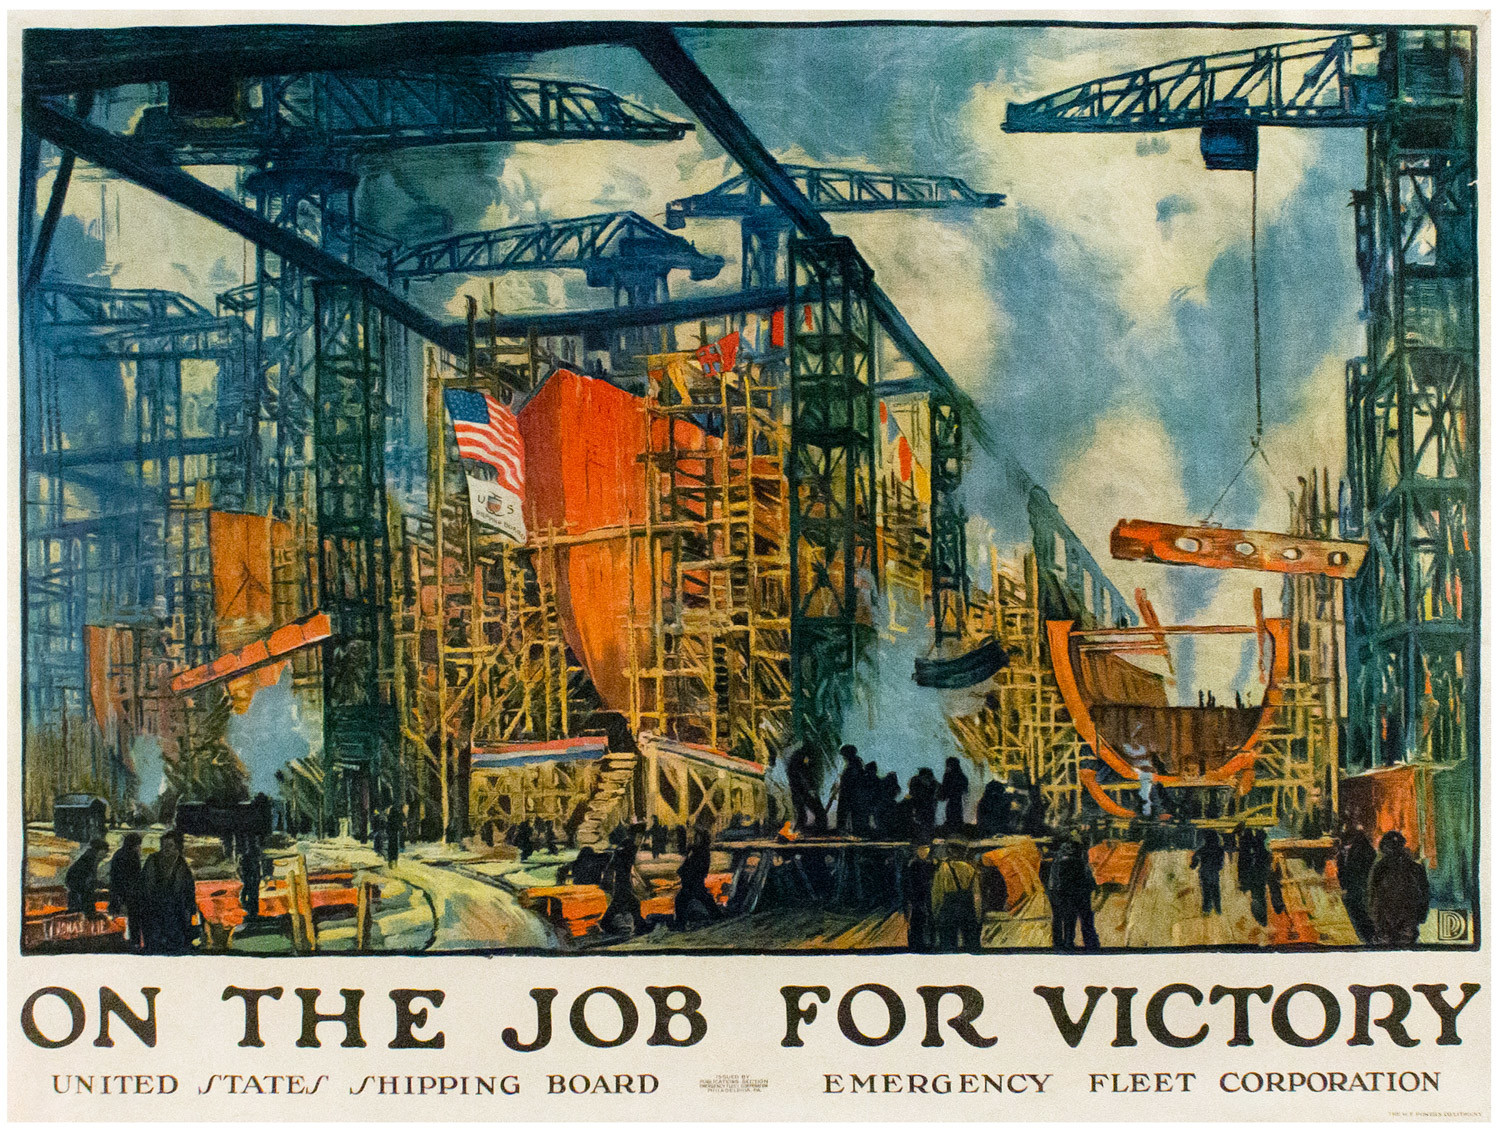 Posters like 'On the Job for Victory' by Jonas Lie celebrate the work Americans put into supporting World War I to show the country their efforts were not being put to waste. The poster is one of many that were donated to the Hudson River Museum years after that war.